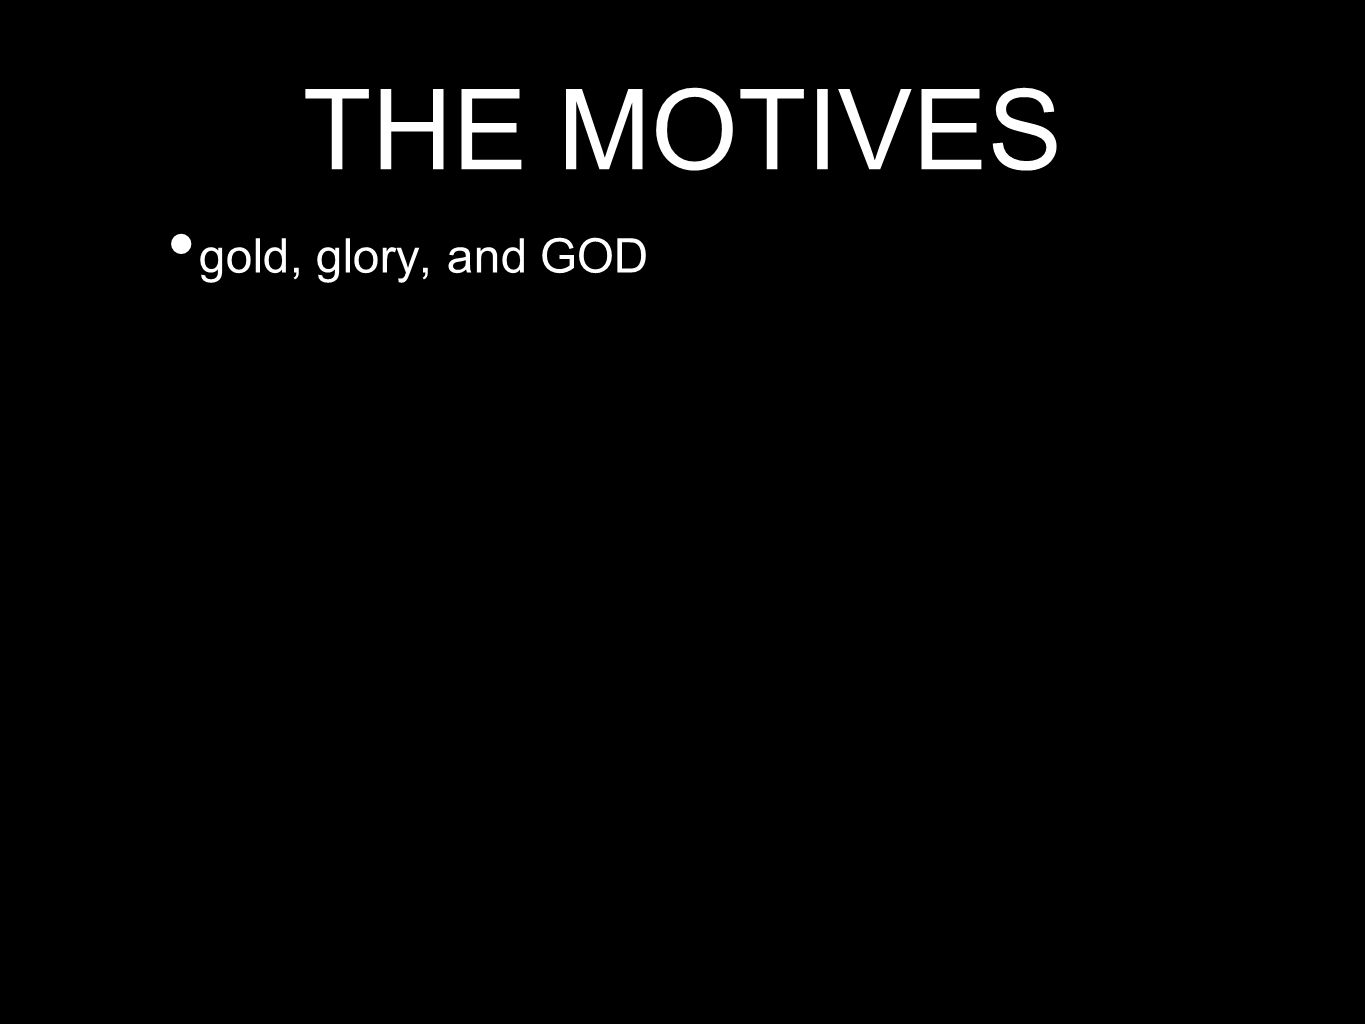 THE MOTIVES gold, glory, and GOD